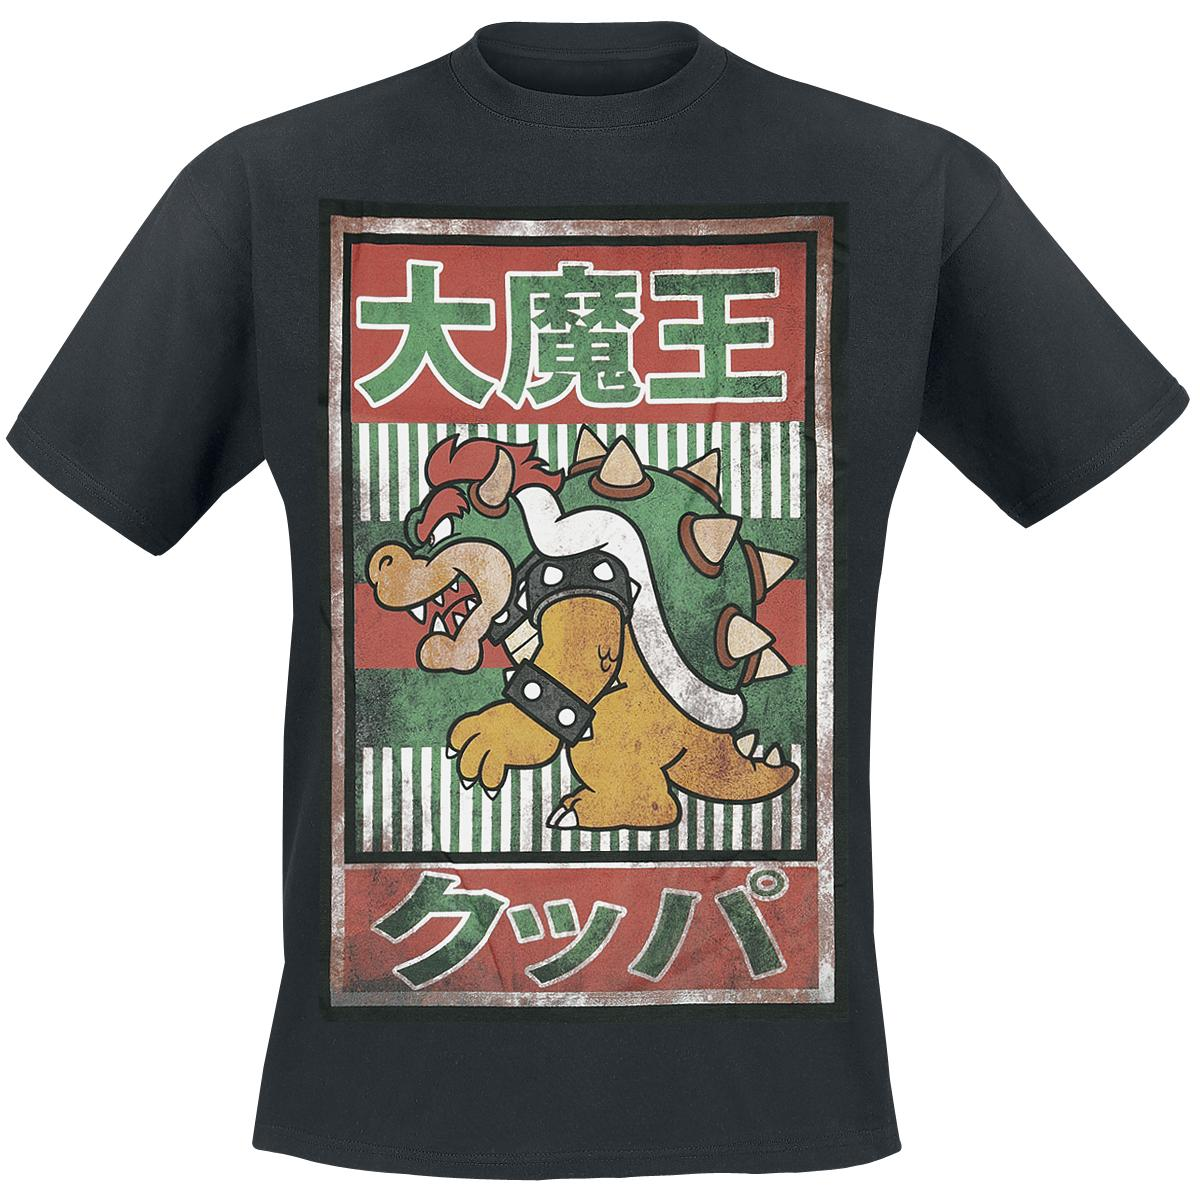 Vintage Bowser T-shirt Design tee